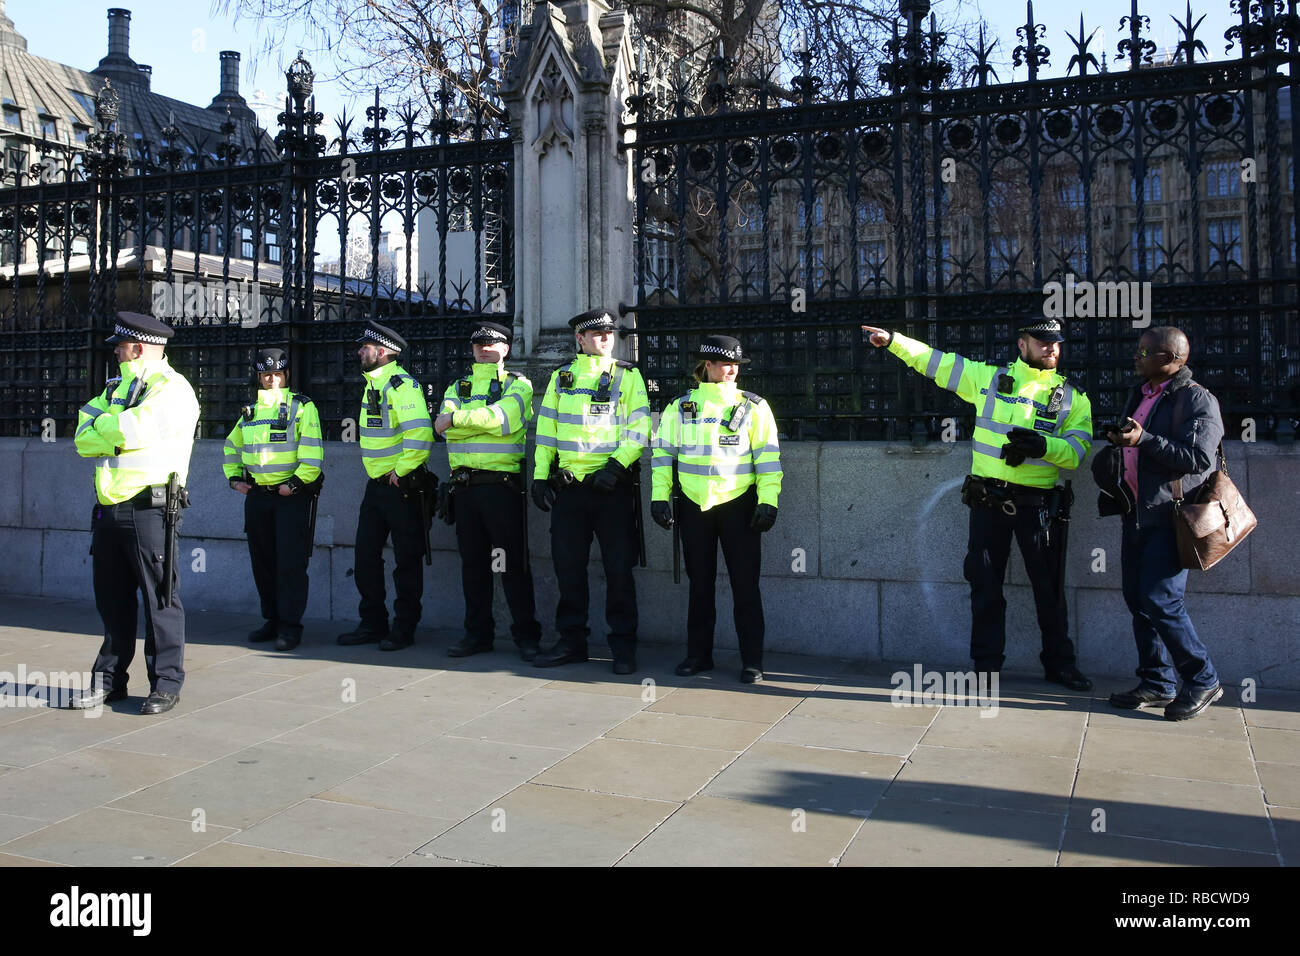 Extras police officers seen outside the House of Parliament in Westminster. Anti-Brexit demonstrators gather outside the British Parliament a week before the MPs to vote on the finalized Brexit deal, MPs will vote on Theresa May's Brexit deal on 15 January. - Stock Image